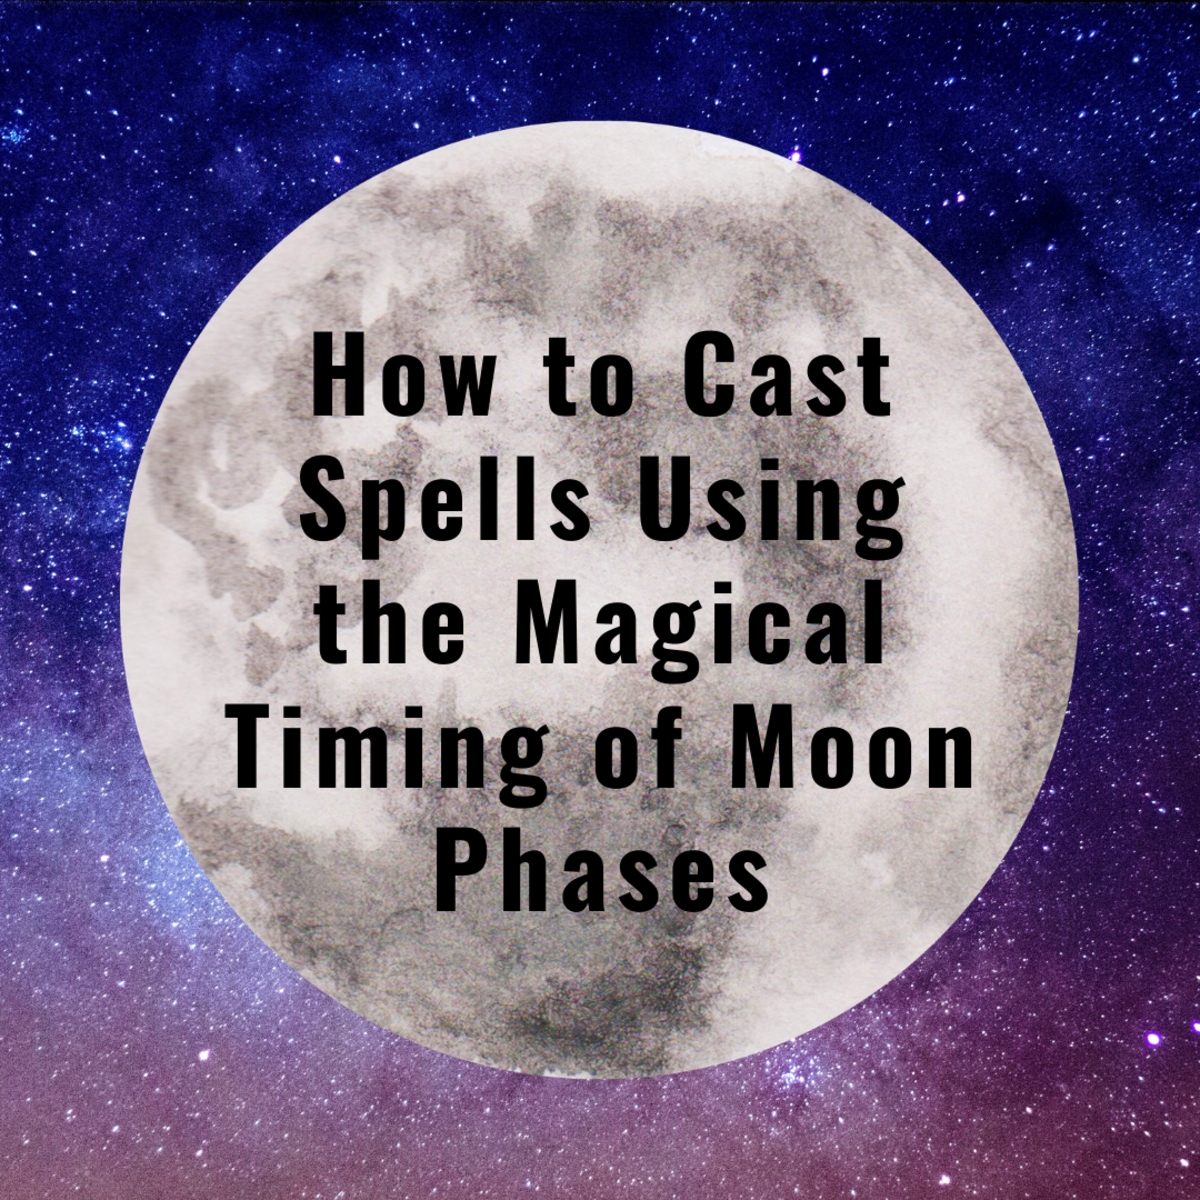 How to Cast Spells Using the Magical Timing of Moon Phases